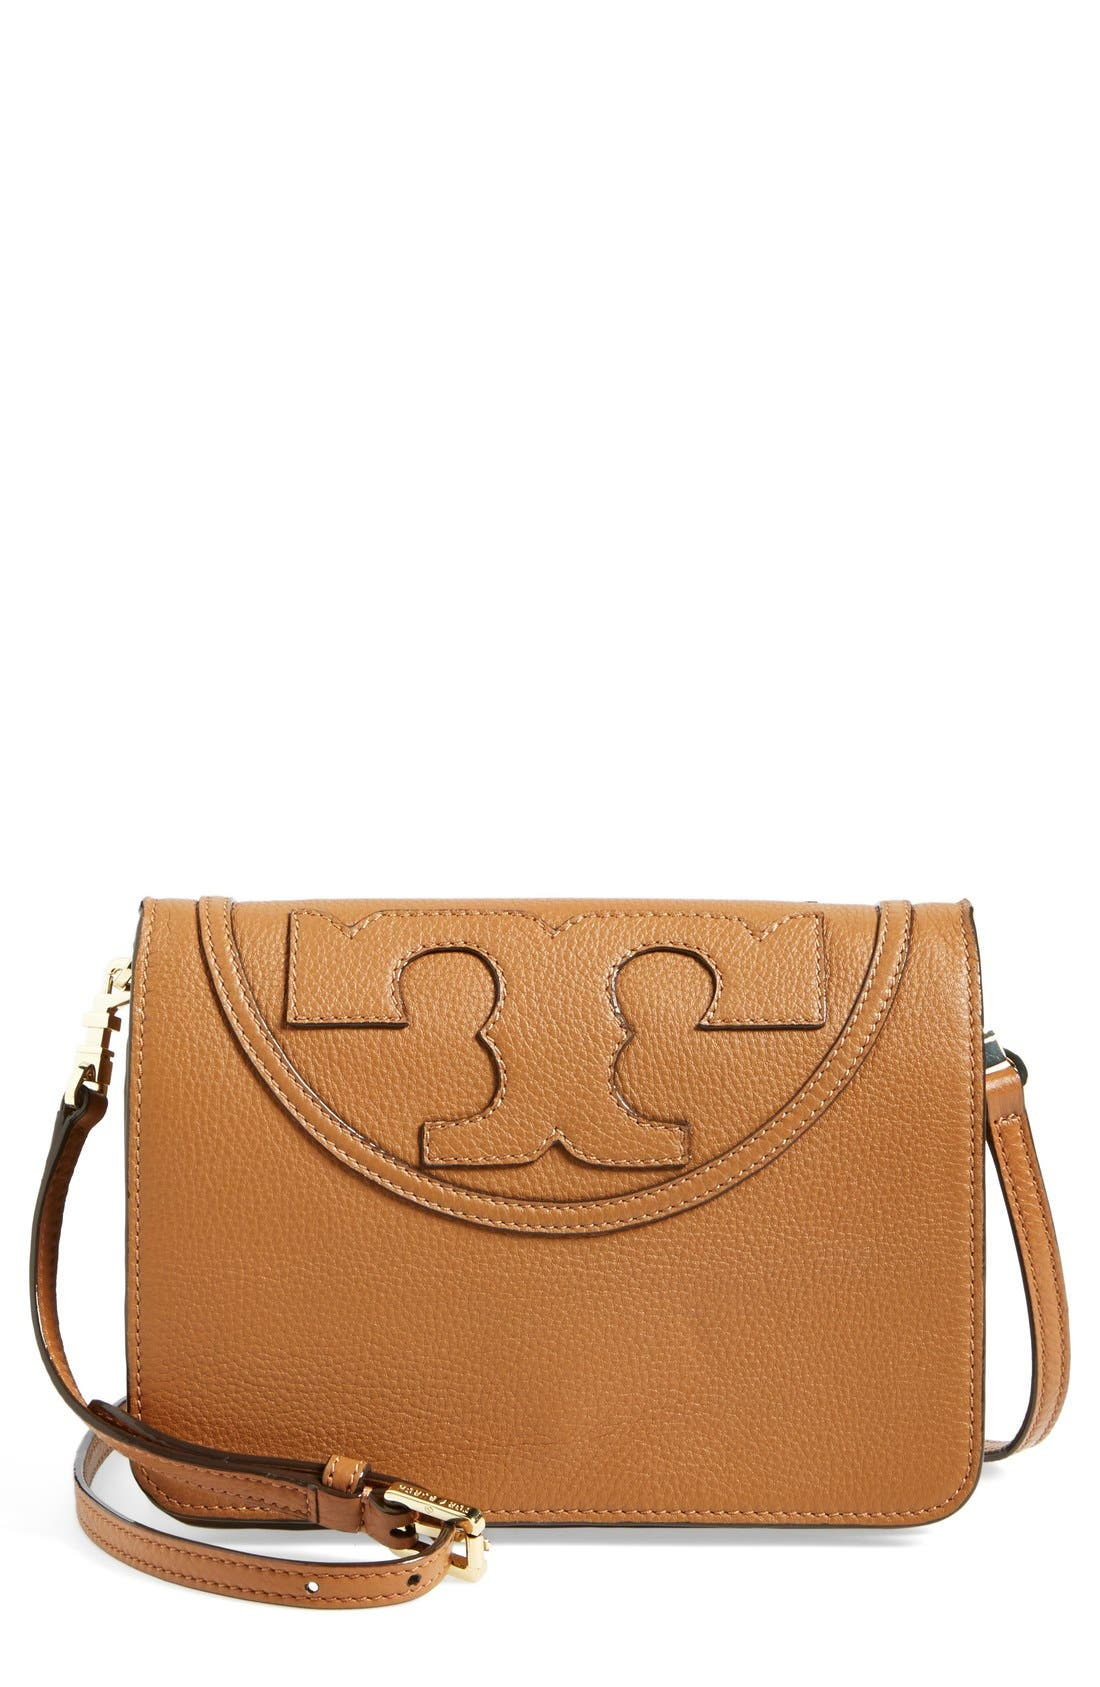 Alternate Image 1 Selected - Tory Burch 'All-T' Leather Crossbody Bag